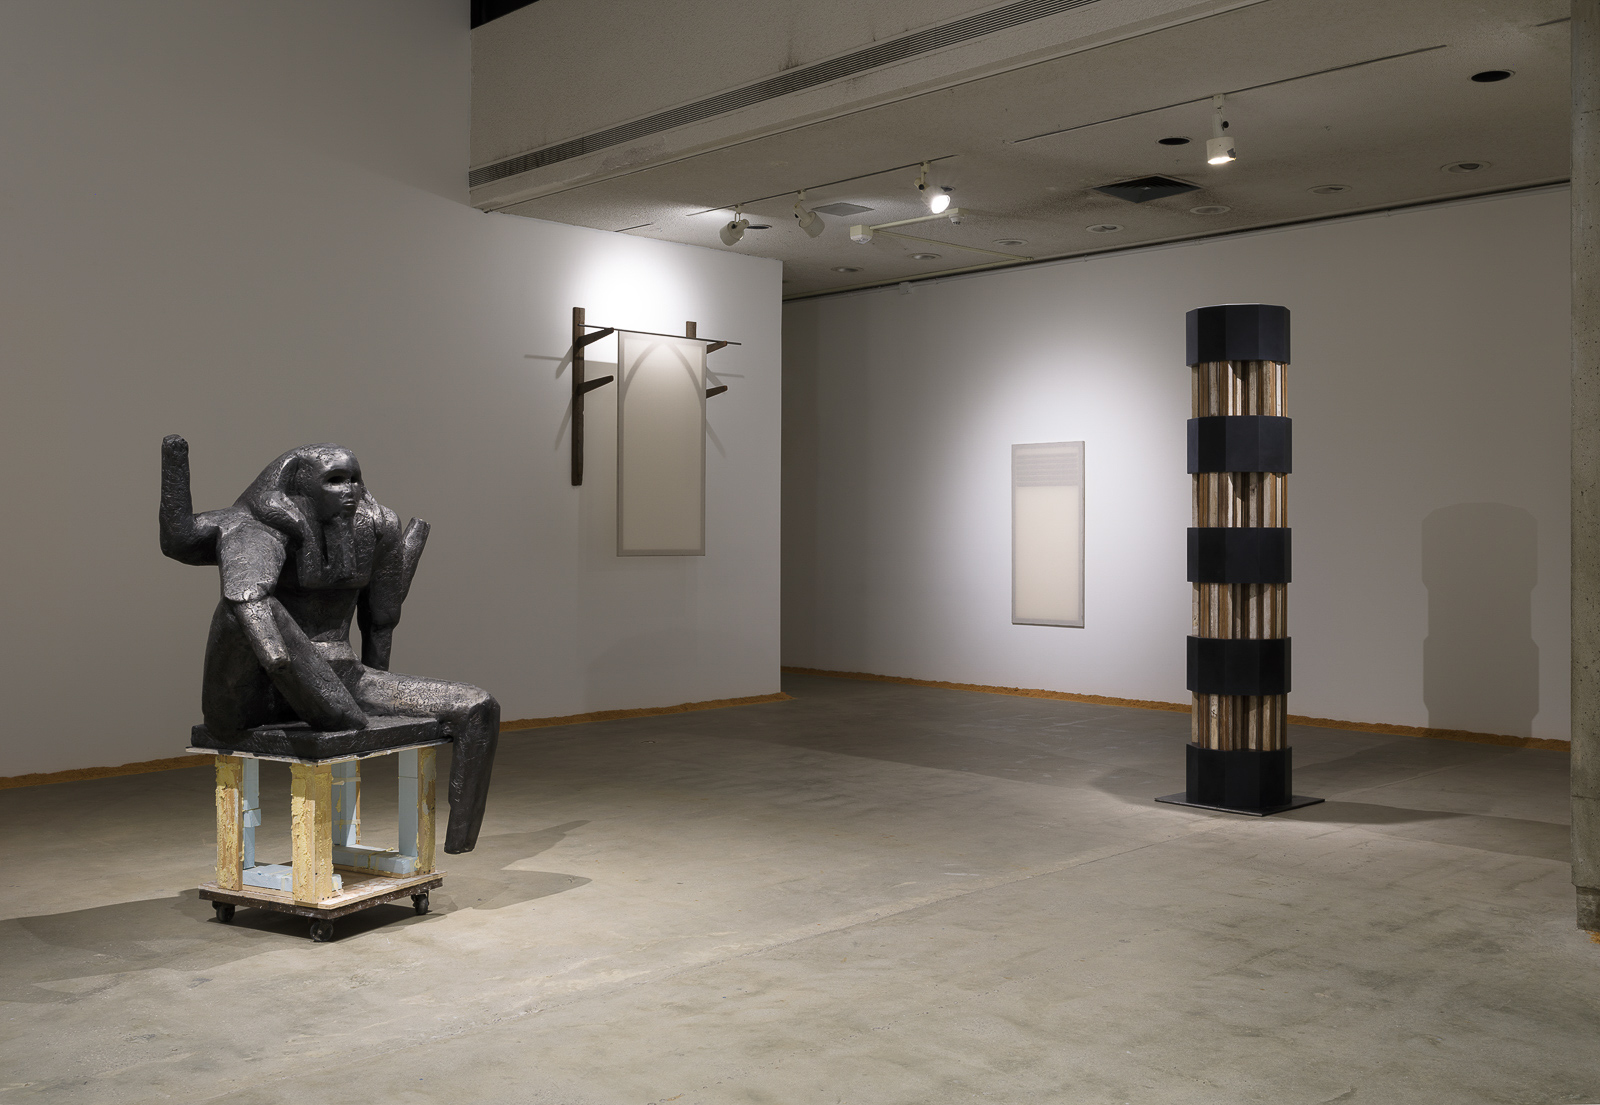 This is a color photograph of five artworks by Lukas Geronimas. On the left in the foreground is the sculpture Puzzlemaster, which is a sculpture of a dark grey seated figure on a wood pedestal placed on top of a dolly. To the right of this work is the sculpture Custom Hung Valance,which is a sculpture constructed of wooden racks and stretched muslin resembling a Gothic-style window. To the right of this work on a perpendicular wall in the background is the artwork Custom Vent,which is hung sculpture made of muslin and plywood resembling a vent on a wall. On the far right in the middle ground is the sculpture Barnsdall Column, which is constructed in nine segments with four multi-paneled and colored wood components in the shape of a cross and five ten-sided prisms made of a custom resurfaced plexiglass in a dark grey-black color. The cross pieces are modeled after the LAMAG's unique column design. Along the perimeter of the floor and walls of this installation is another artwork titled Puzzledust, which is sawdust that was produced, collected and stored by the artist over the past two years.